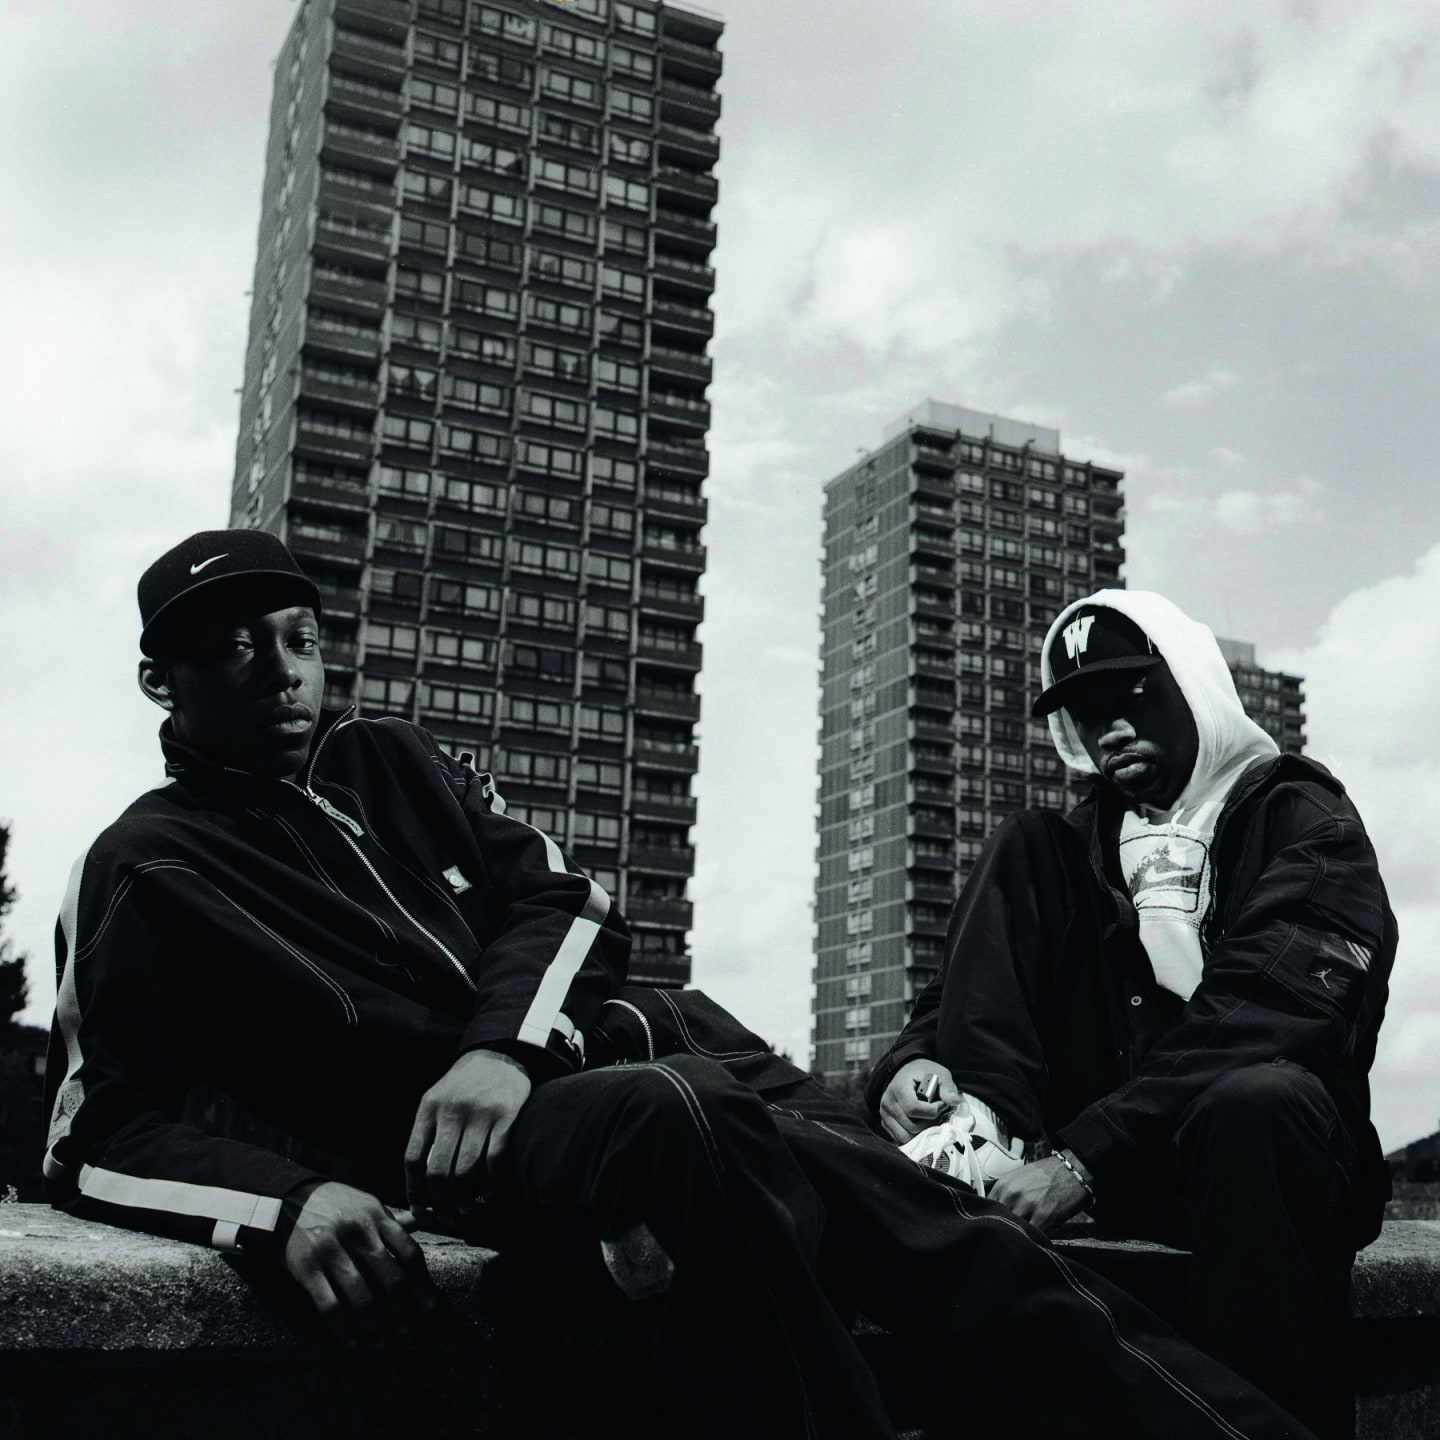 Wiley recalls London's early 2000s music scene and the